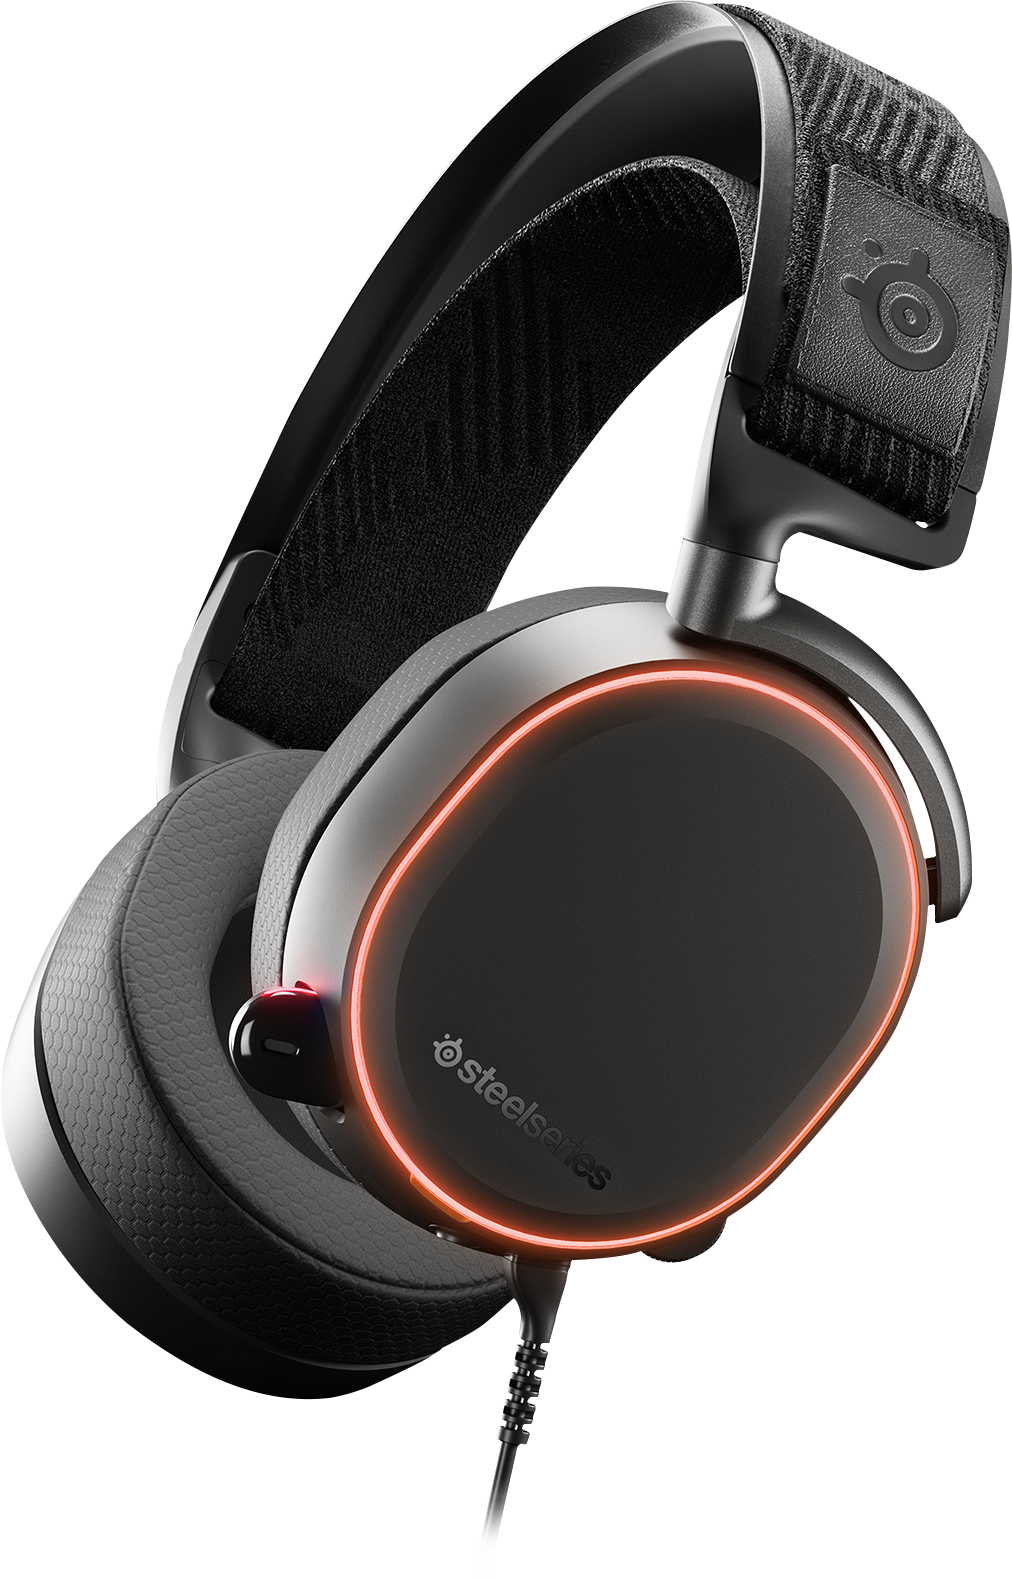 Main view of Steel Series Arctic Pro PC Gaming Headset